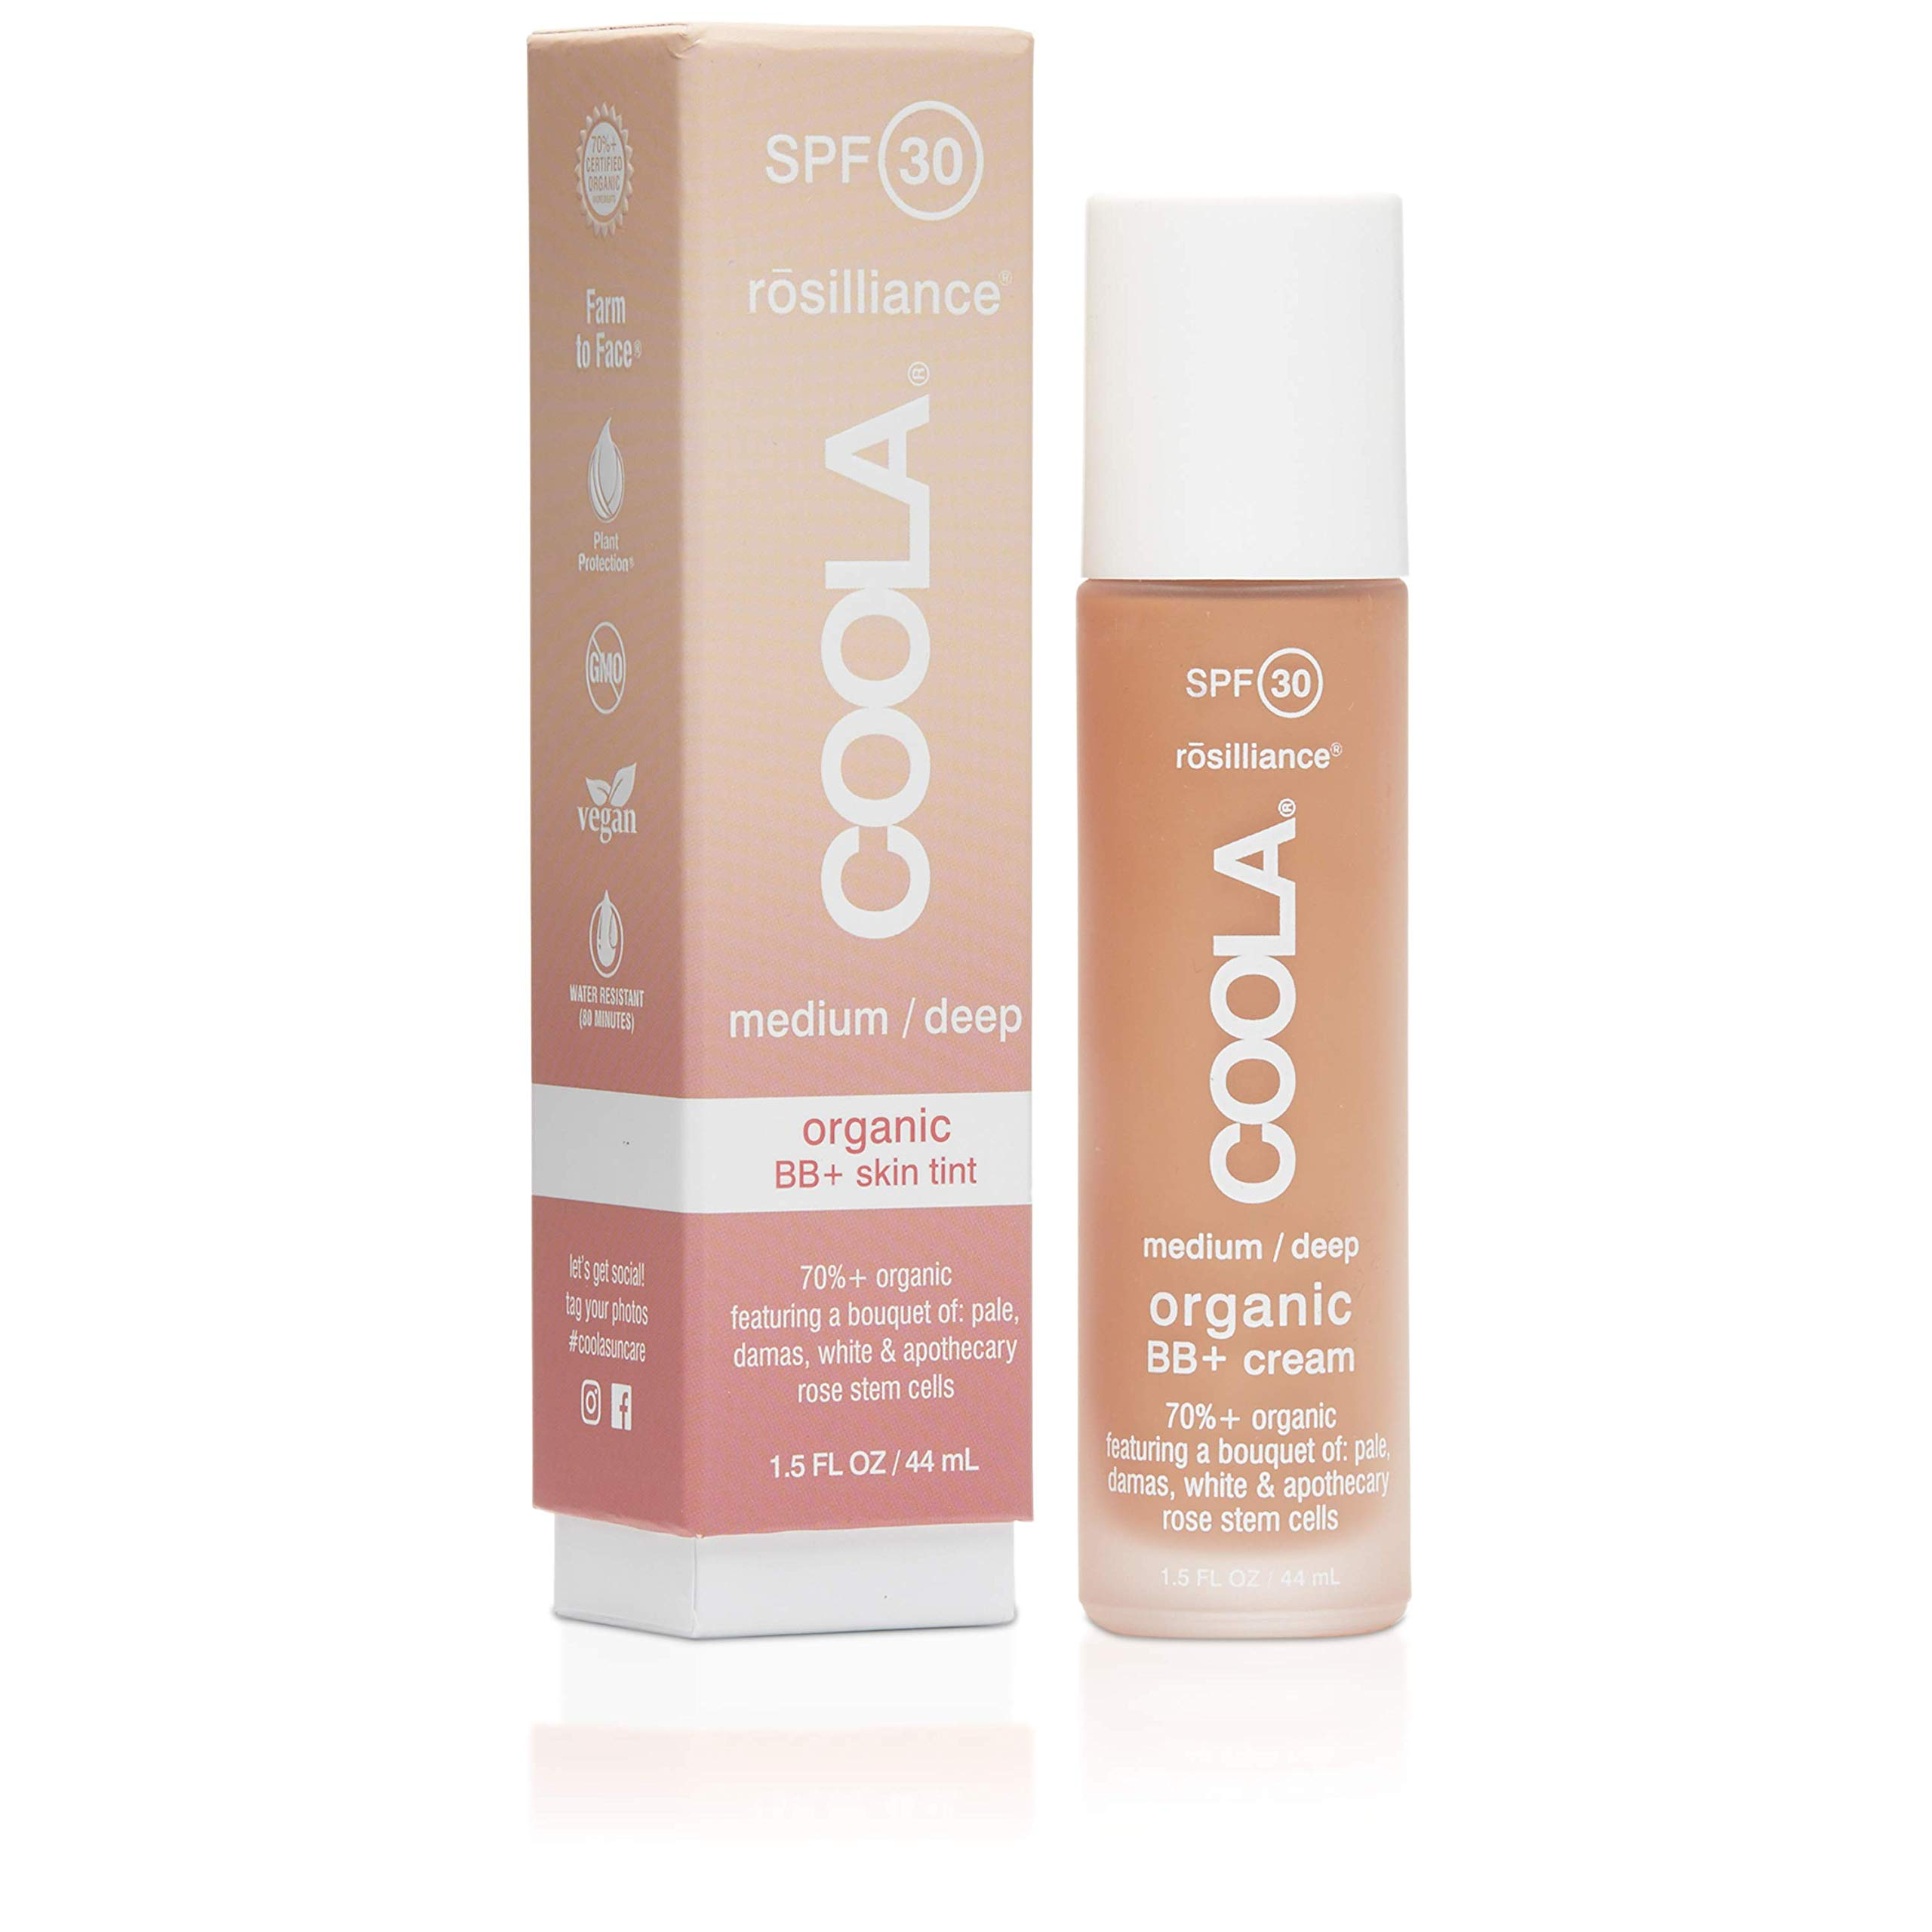 COOLA Rosilliance Mineral BB+ Cream Tinted Organic Sunscreen, Broad Spectrum SPF 30, Vegan, Water-Resistant, Ultra-Moisturizing, Antioxidant Enriched, Light Medium